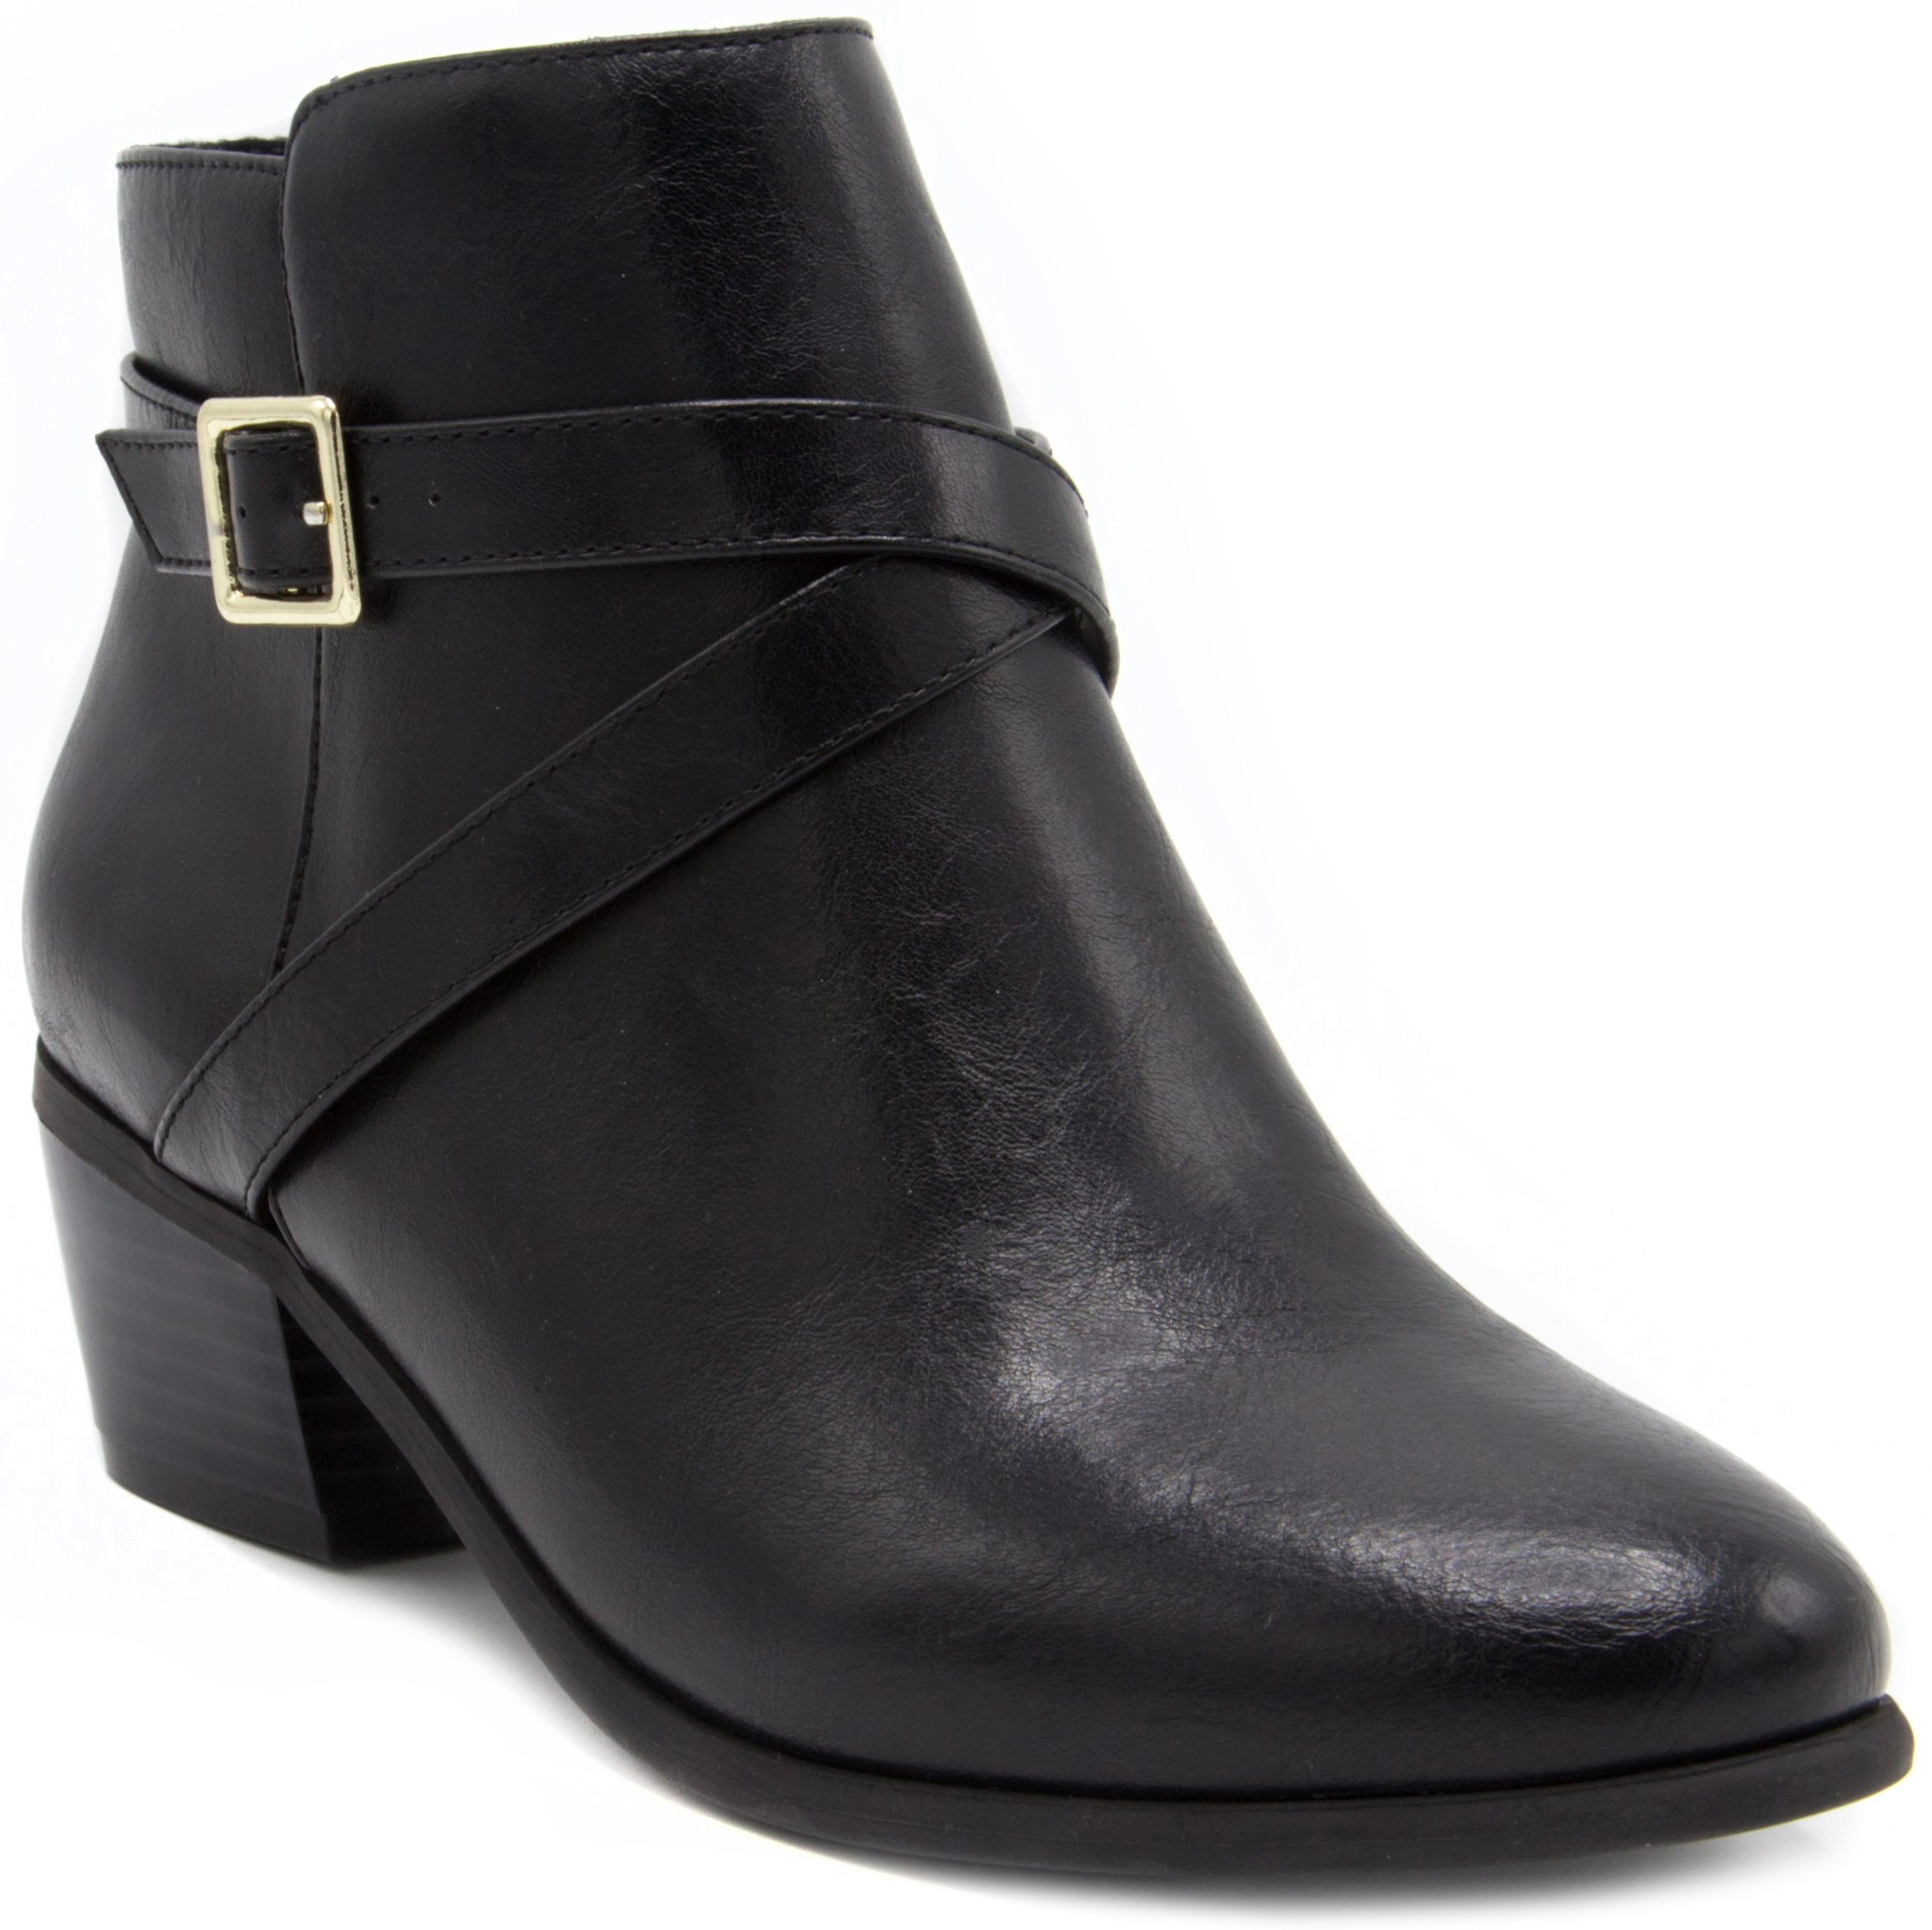 London Fog Womens Halifax Heeled Ankle Booties Black 6 by London Fog